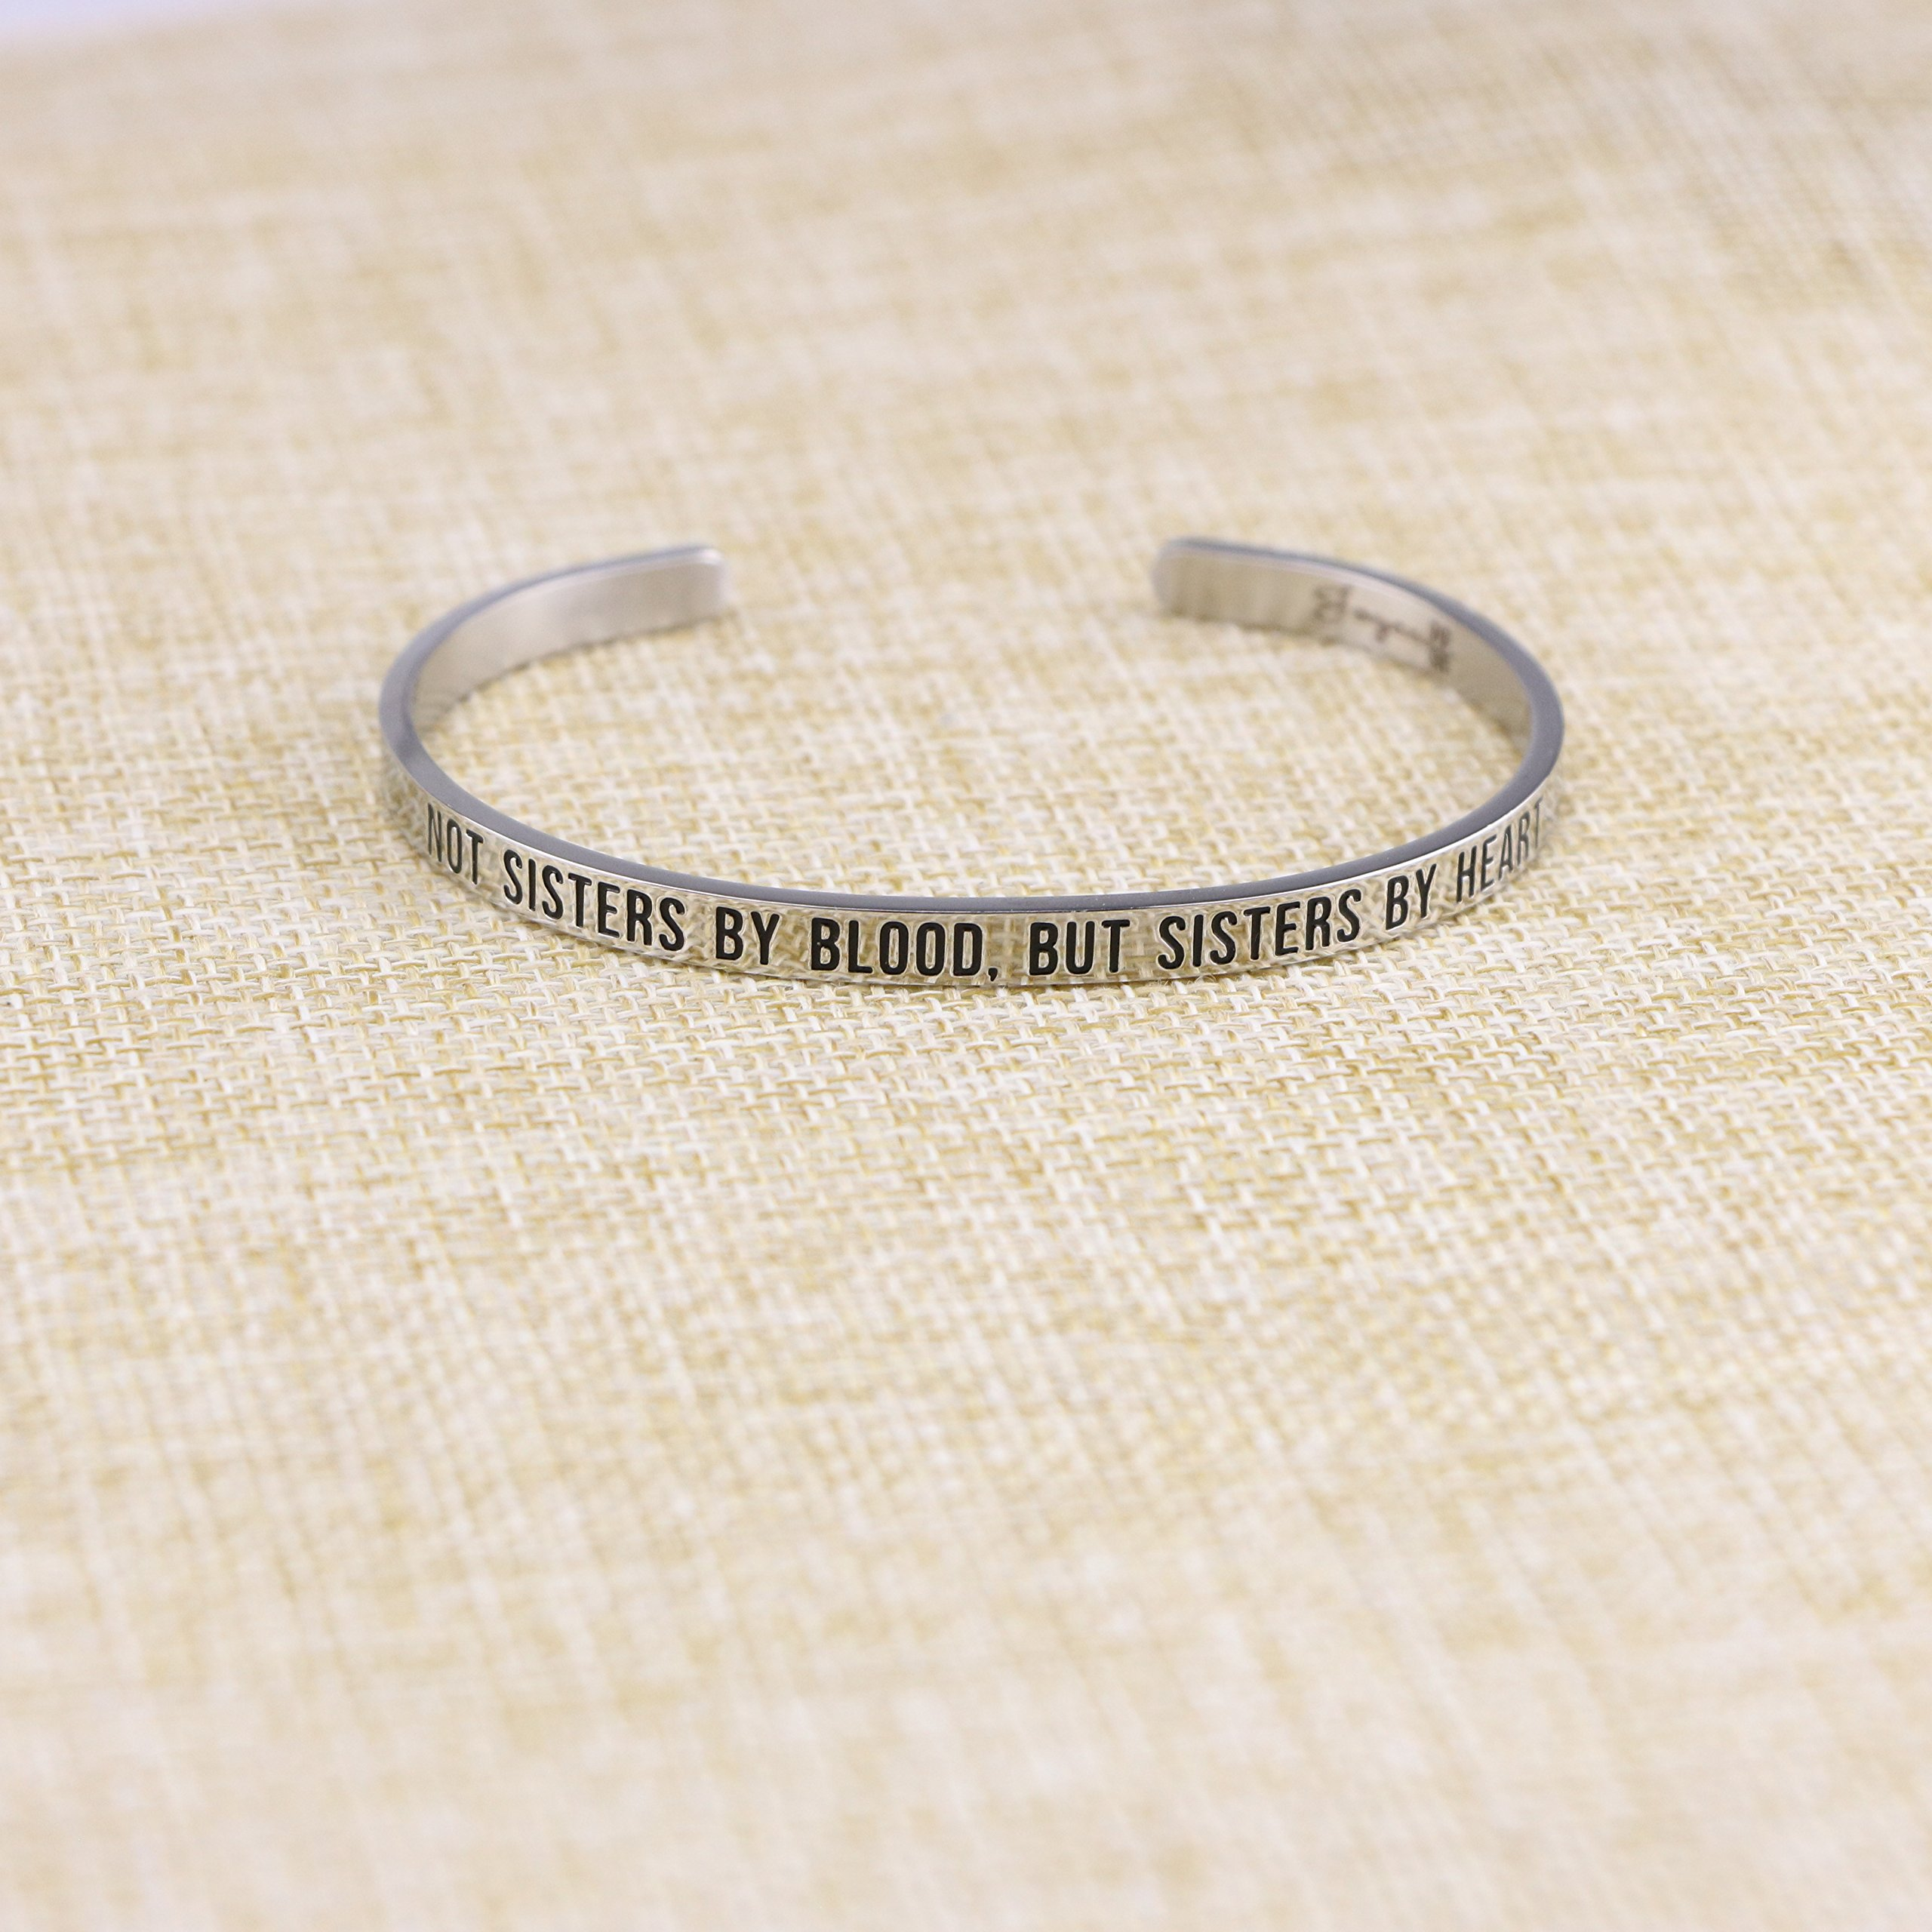 Joycuff Best Friend Bracelet Cuff Engravable Mantra Bangle BFF Jewelry Gifts for Her Not sisters by blood, but sisters by heart by Joycuff (Image #4)